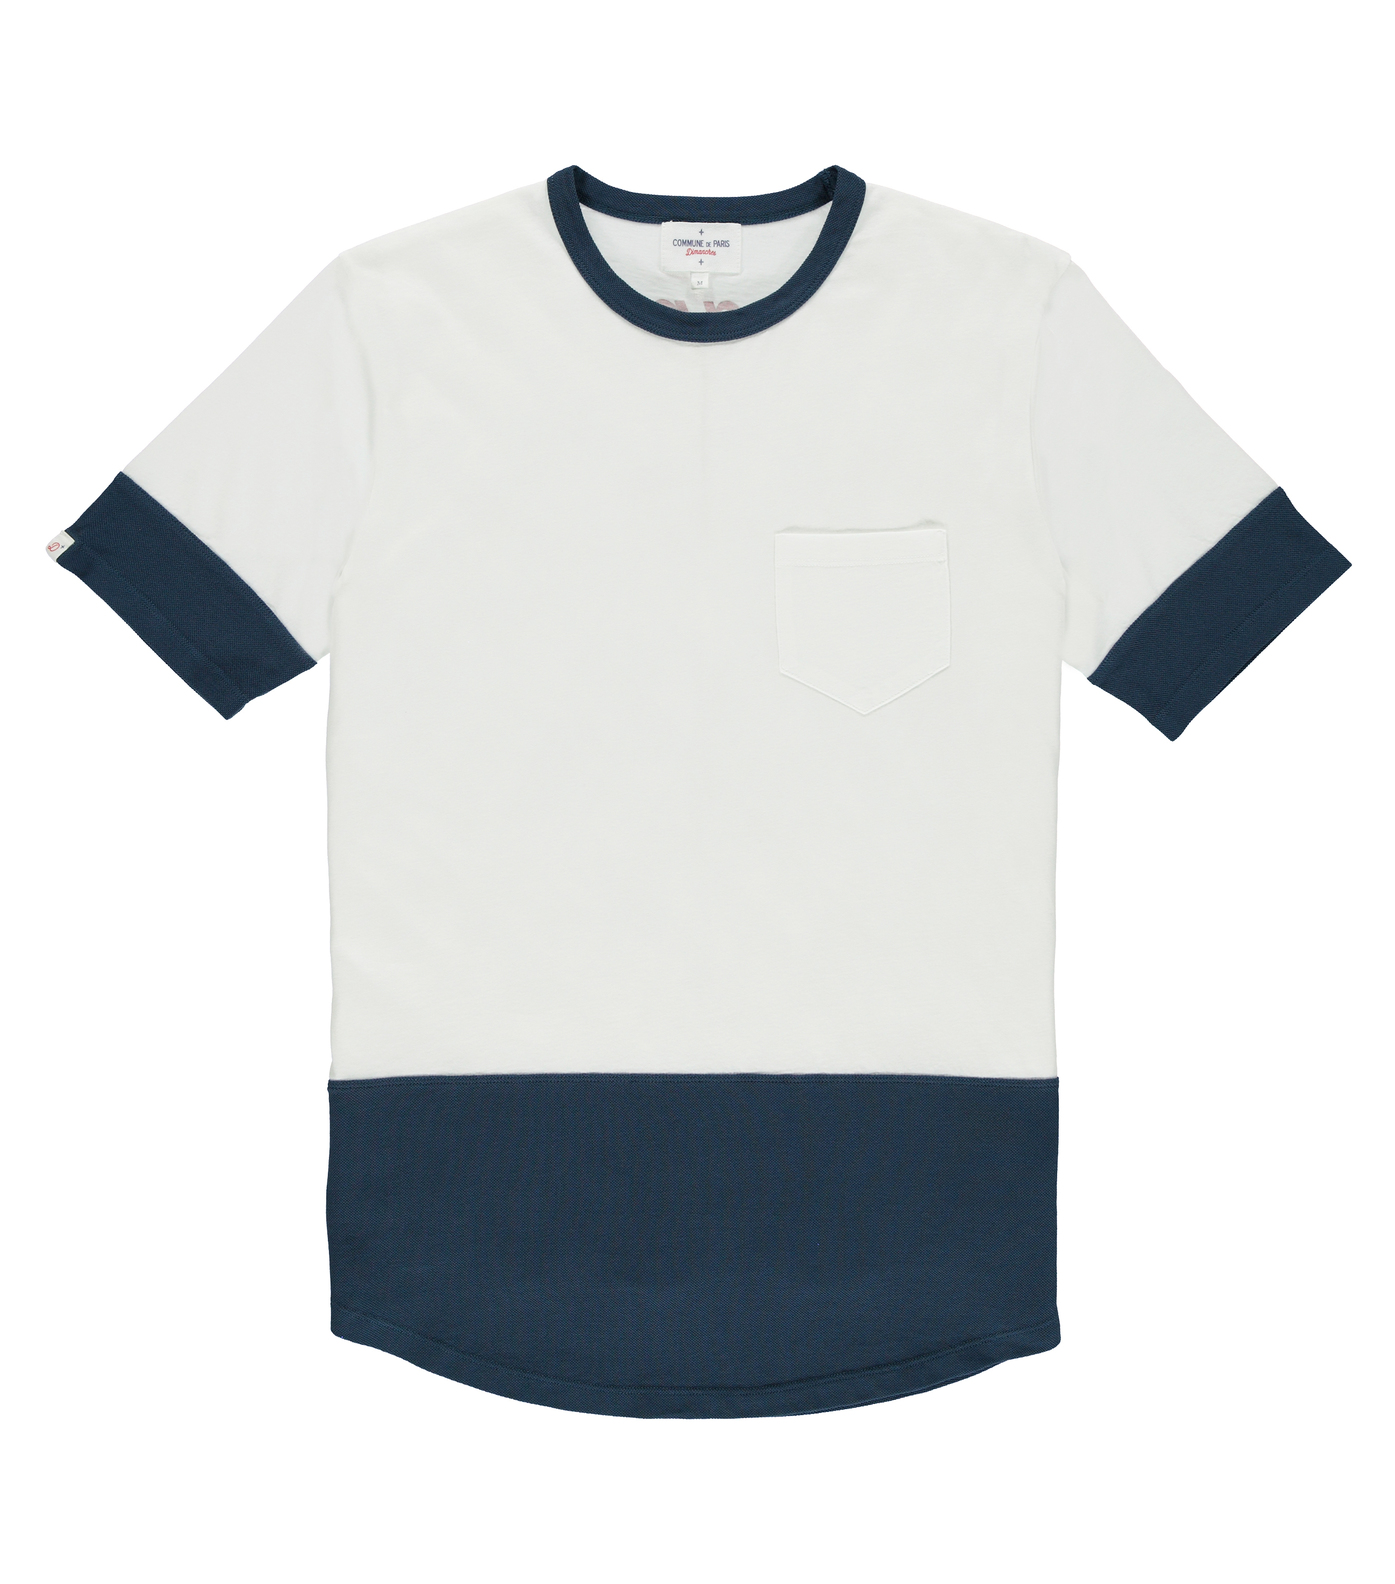 Tee Giant - White/navy